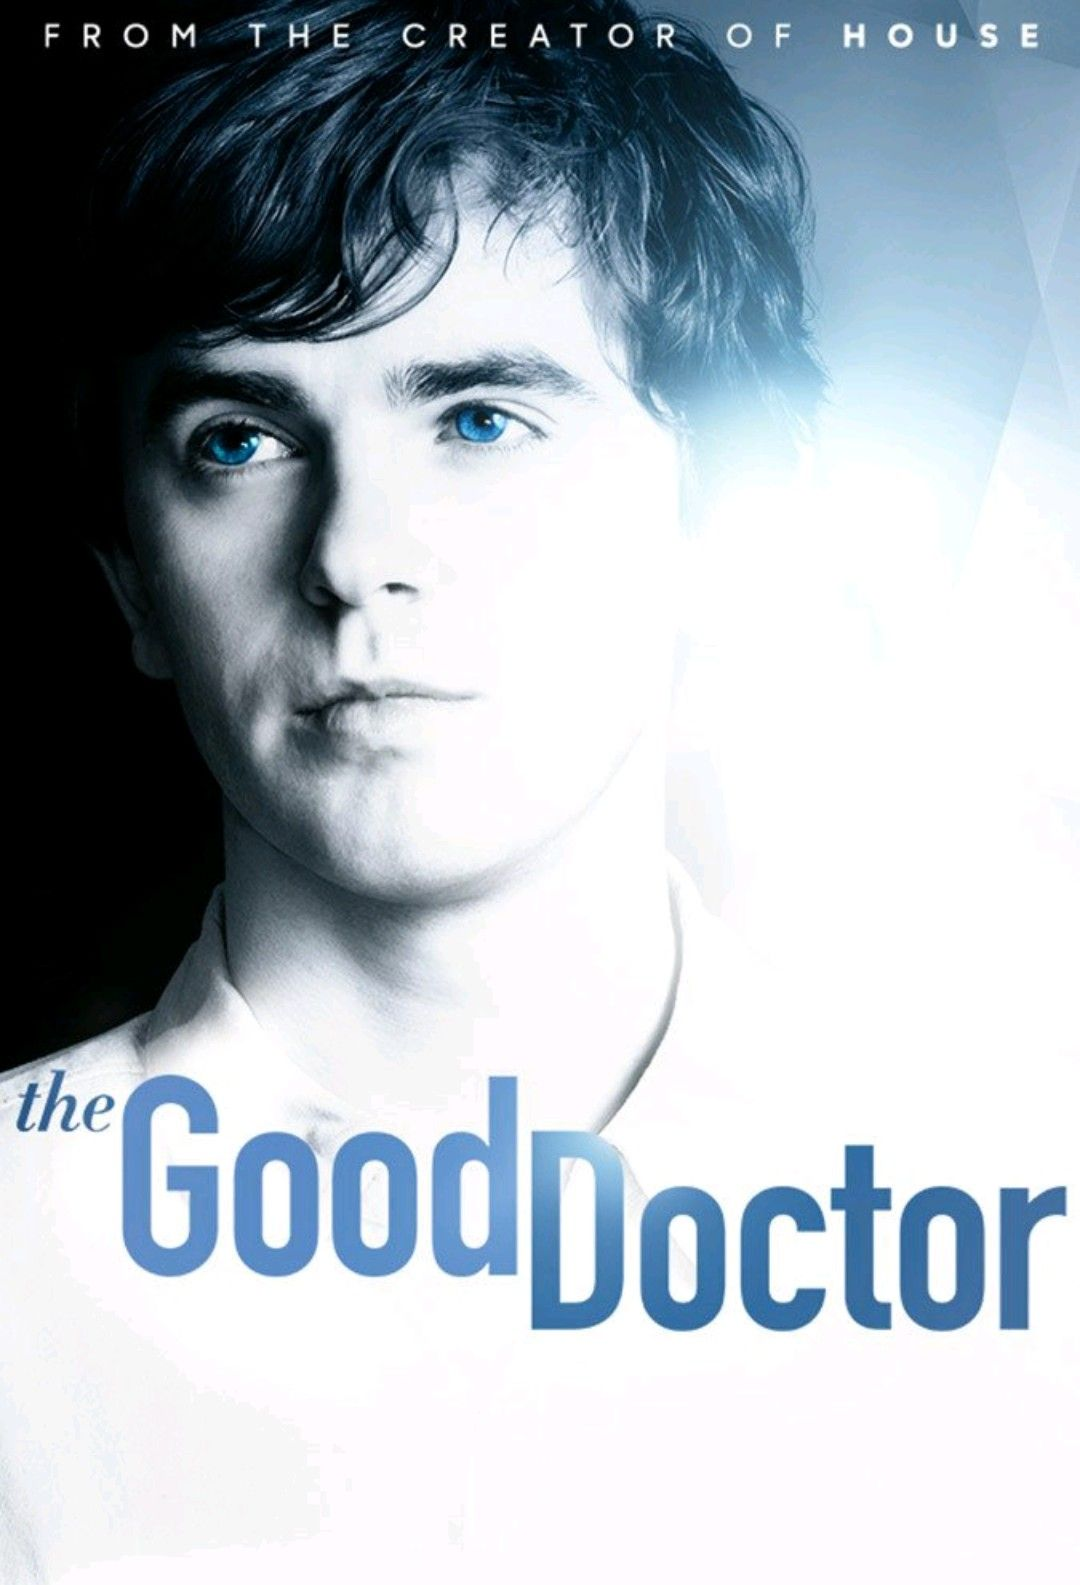 The Good Doctor 2017 On Abc Freddie Highmore Serie De